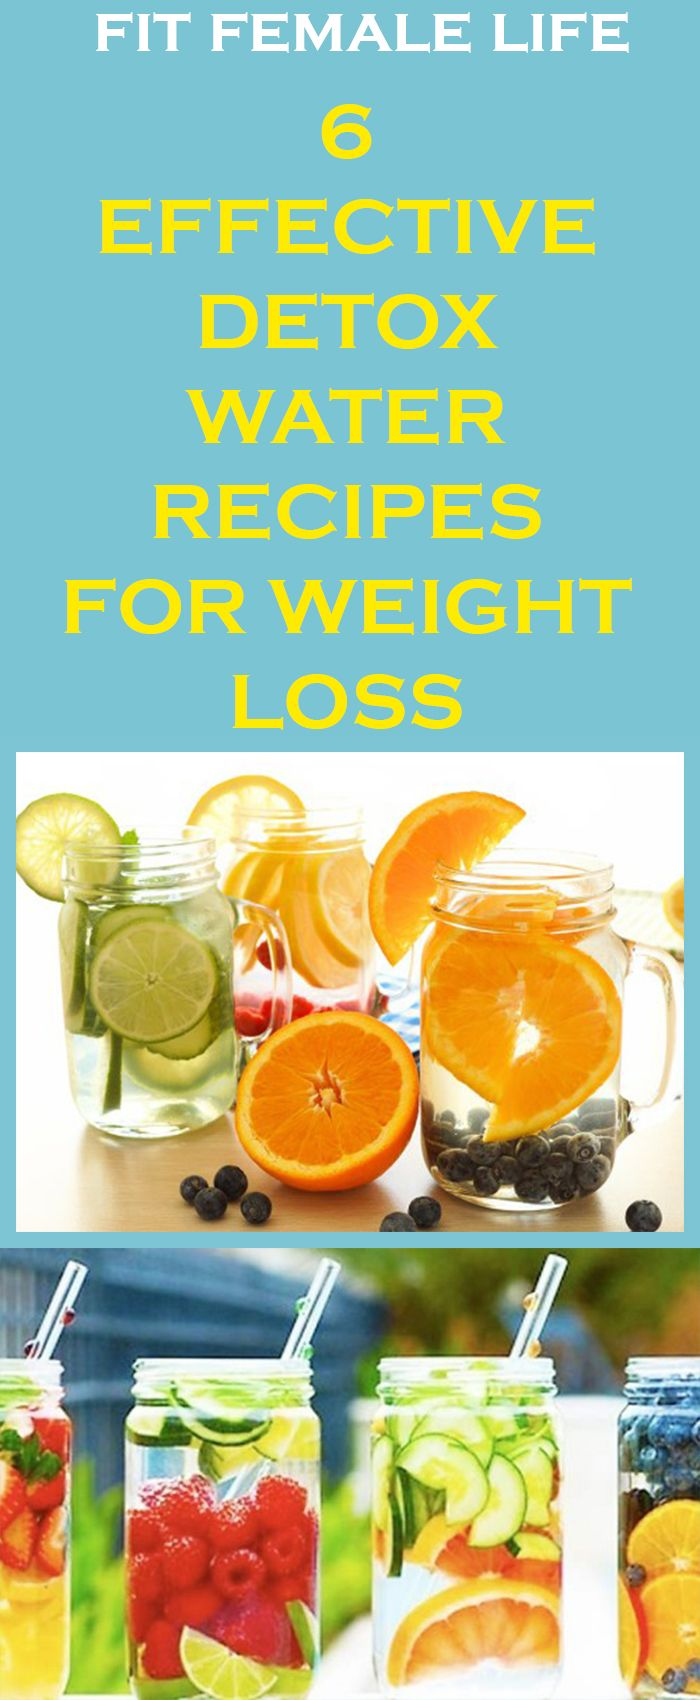 EFFECTIVE DETOX WATER RECIPES FOR WEIGHT LOSS  Home Remedies